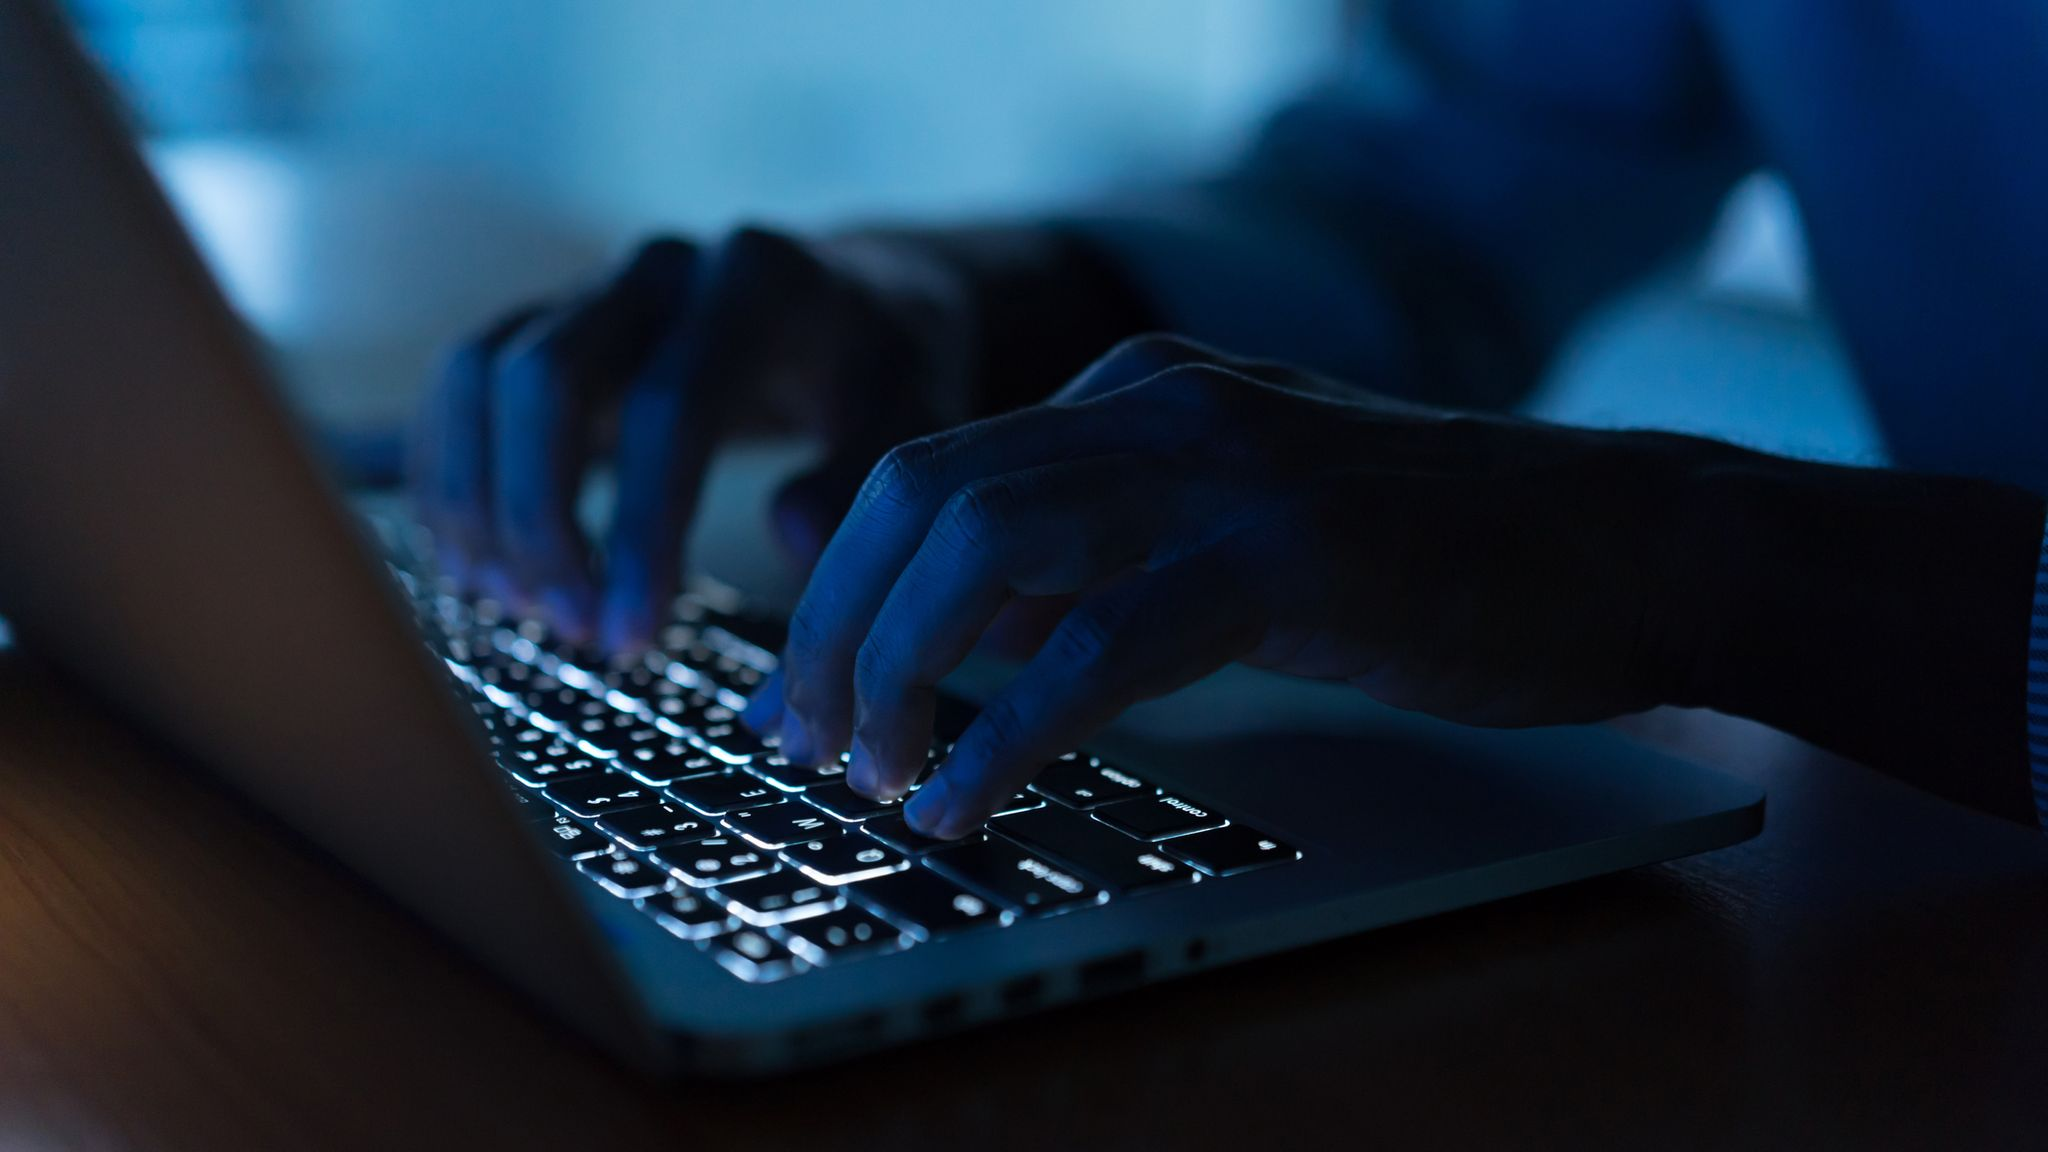 Russian Hackers Target Washington DC Police Department In Apparent Ransomware Attack